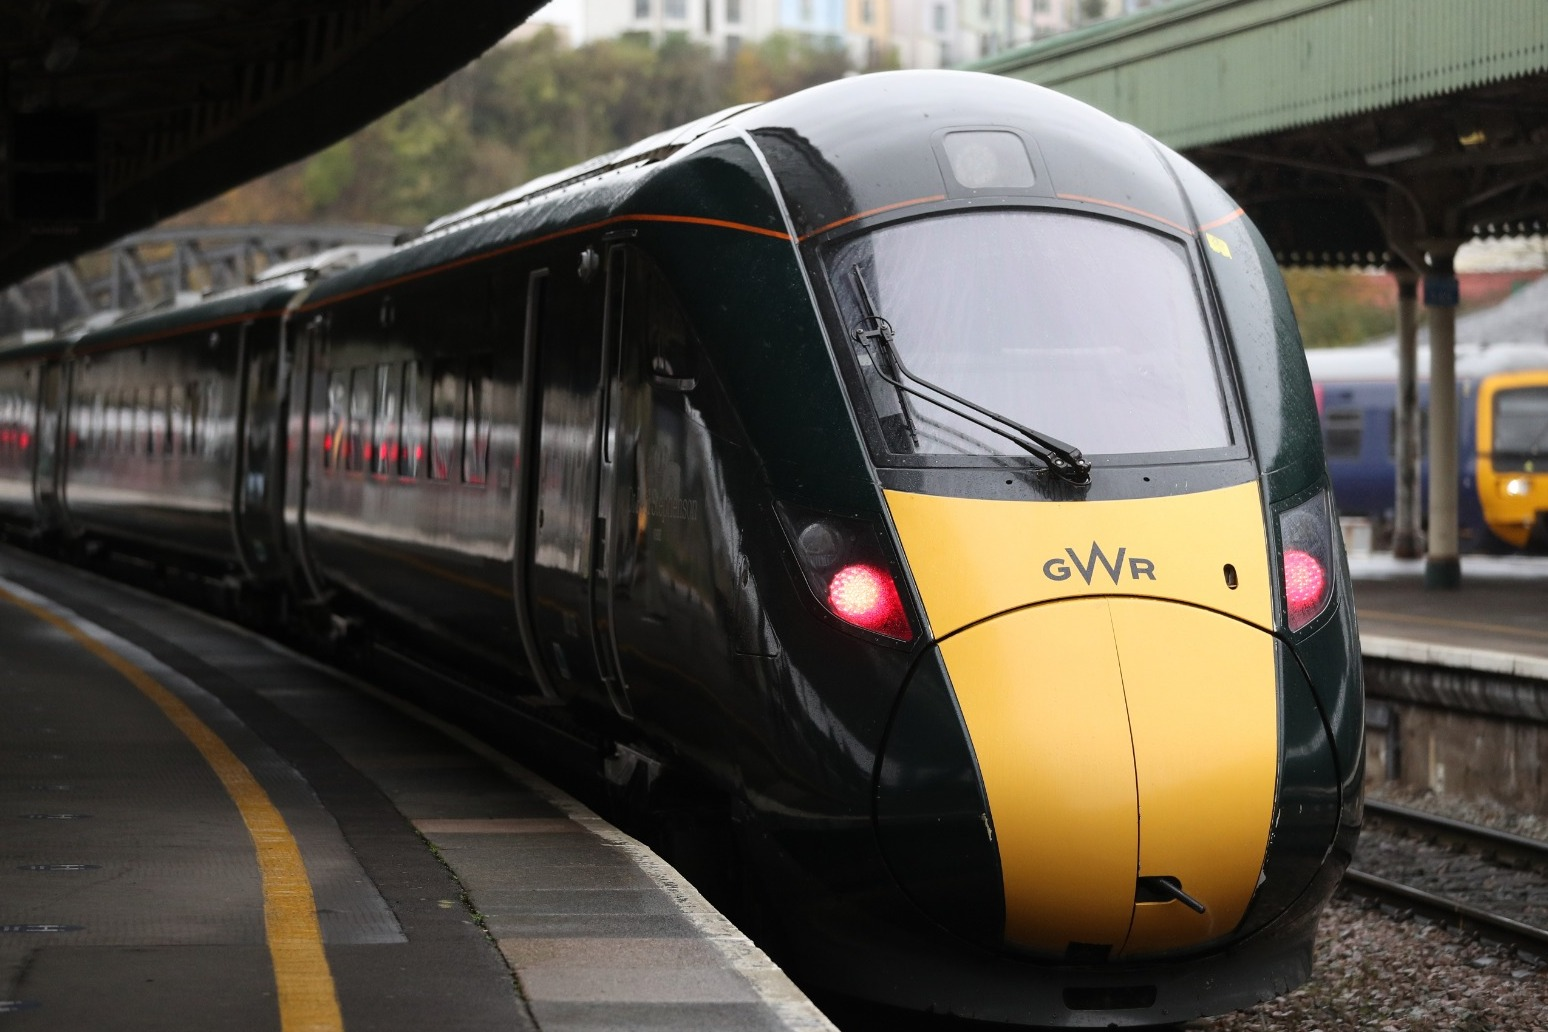 Knock-on rail disruption could last days after cracks found in trains